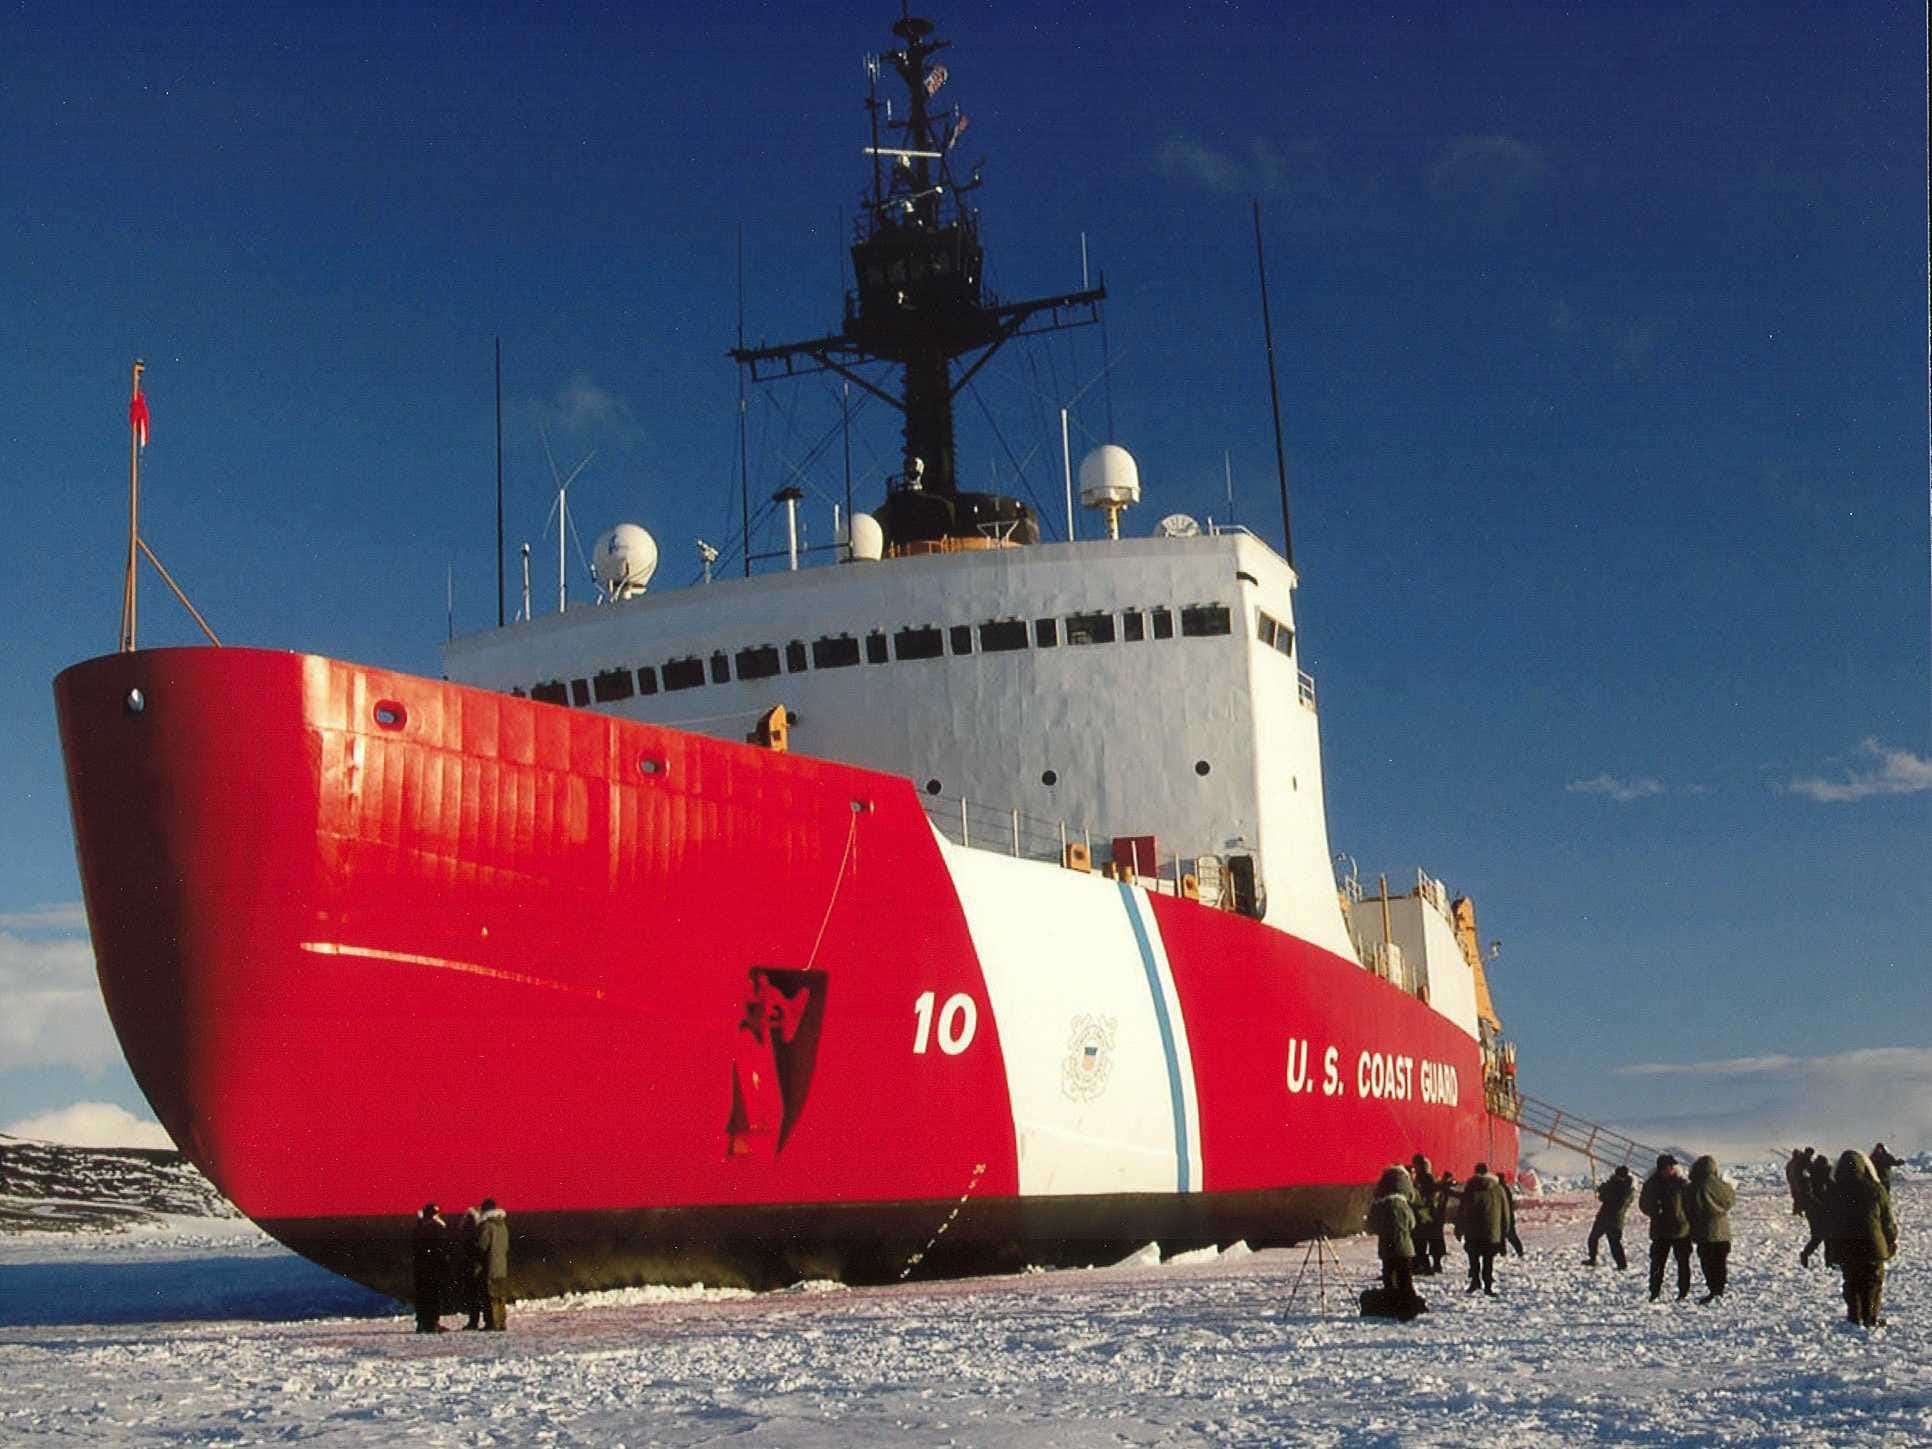 Three Motherships Under Antarctic Ice Now Being Excavated, Says Visionary David Wilcox... US Ice-Breaker On It's Way Now!